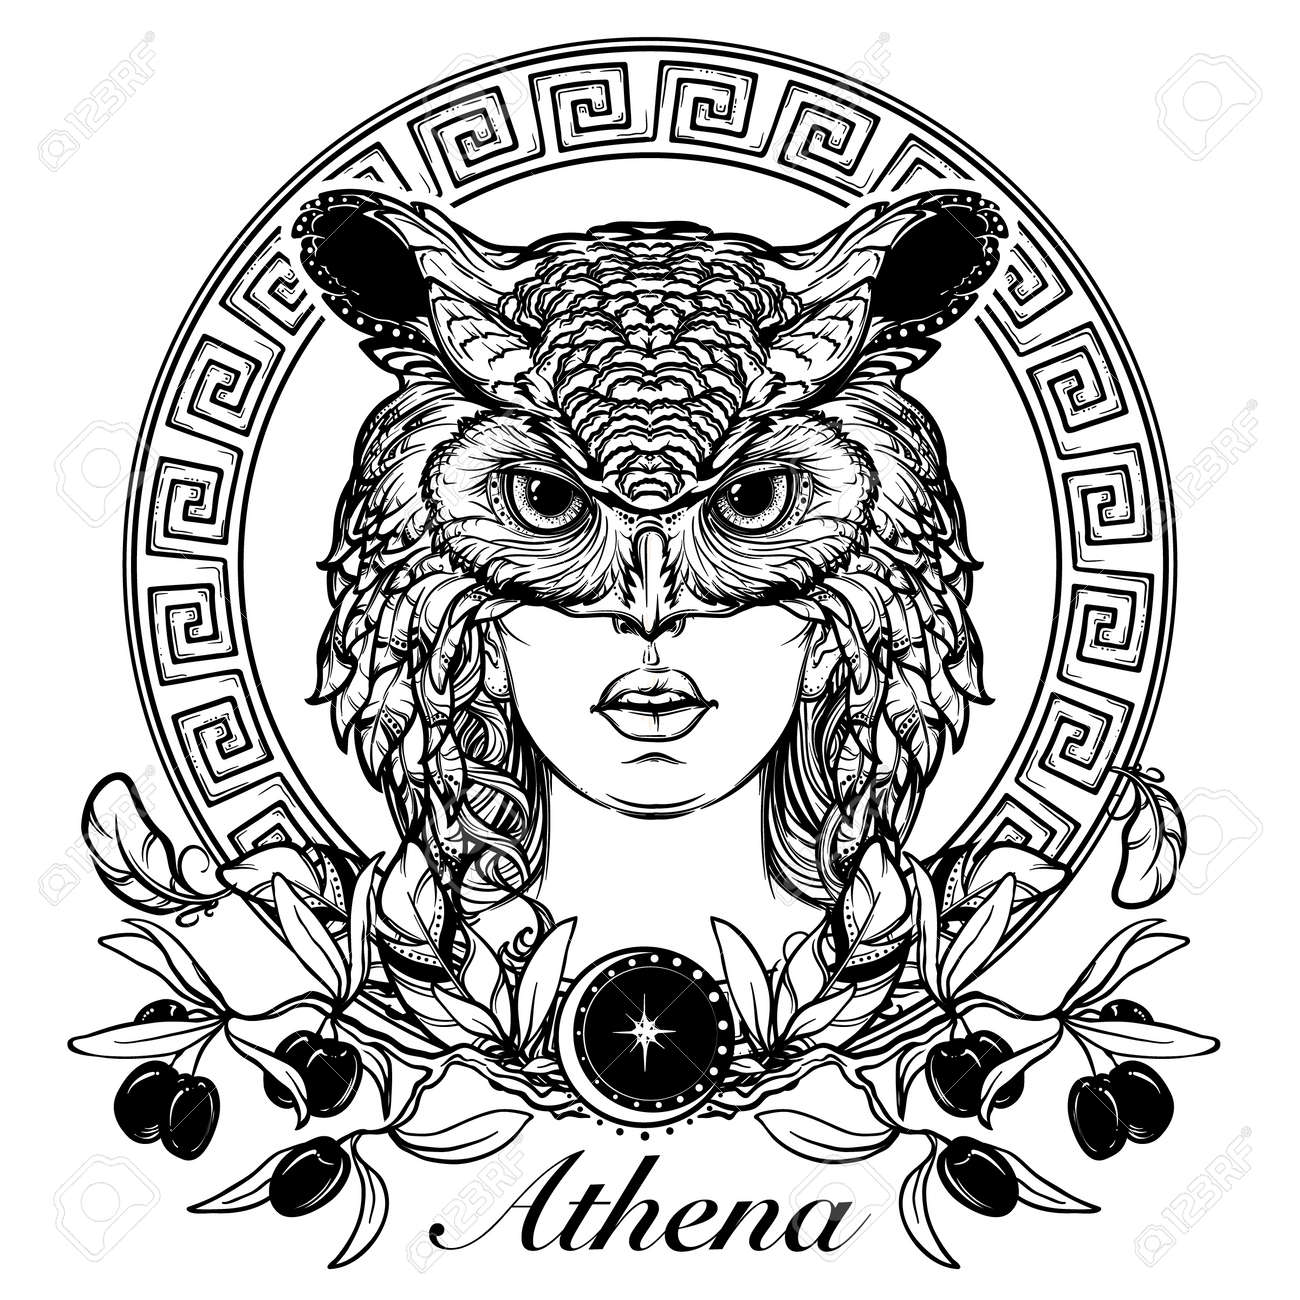 189 Greek Goddess Athena Stock Vector Illustration And Royalty Free